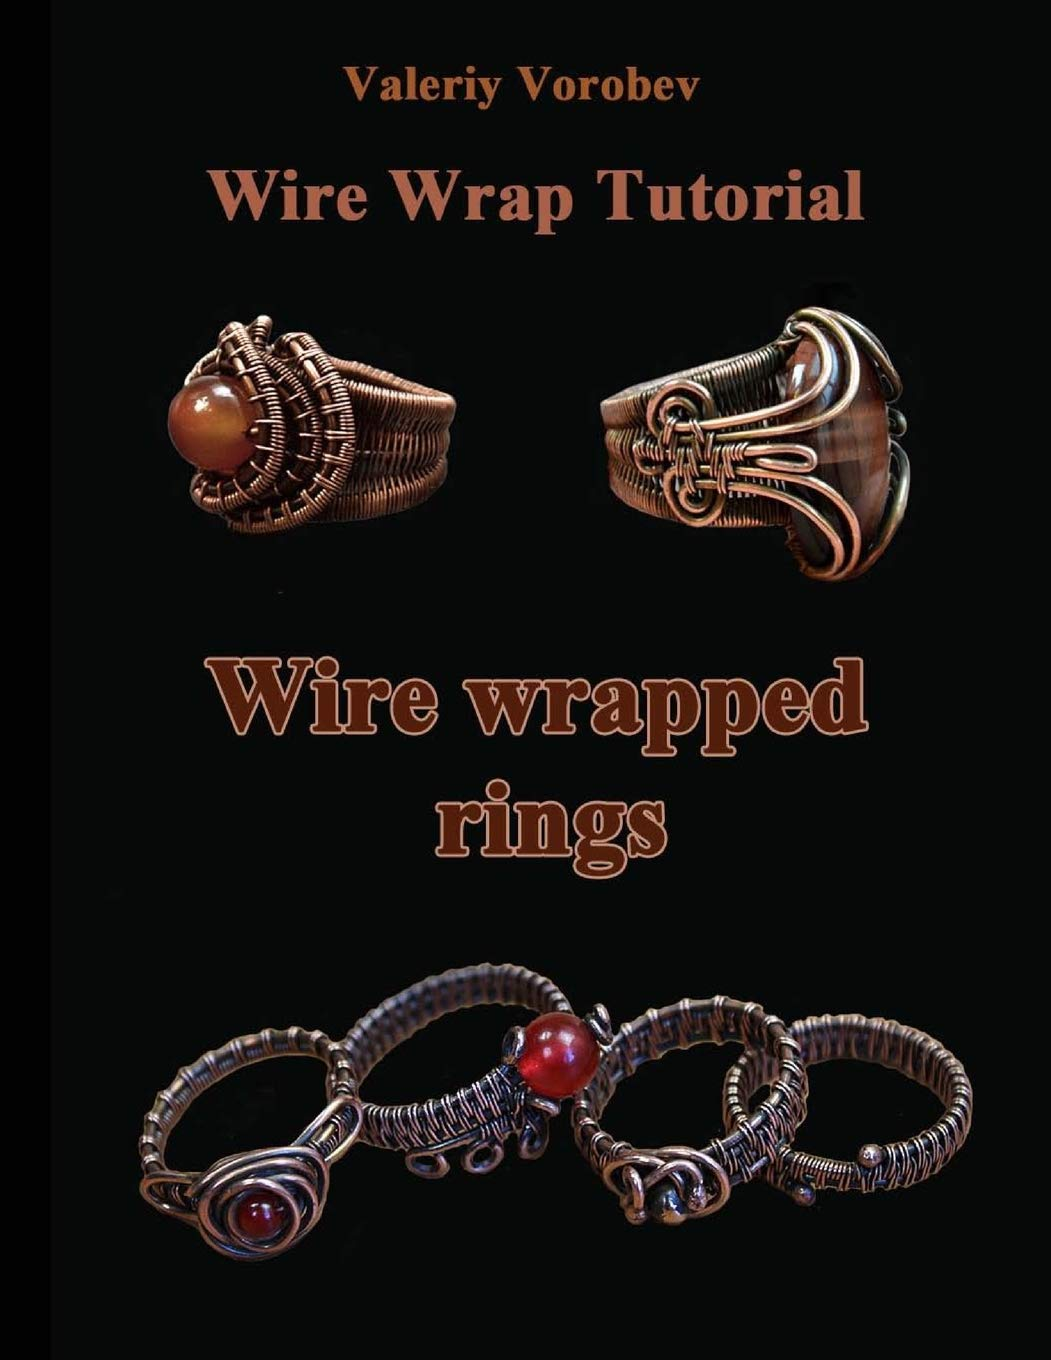 Wire Wrap Jewelry Tutorial Wire Wrapped Rings Wire Wrapped Rings A Step By Step Guide An Il Rated Tutorial Of The Wire Wrapping Art Wire Wrap